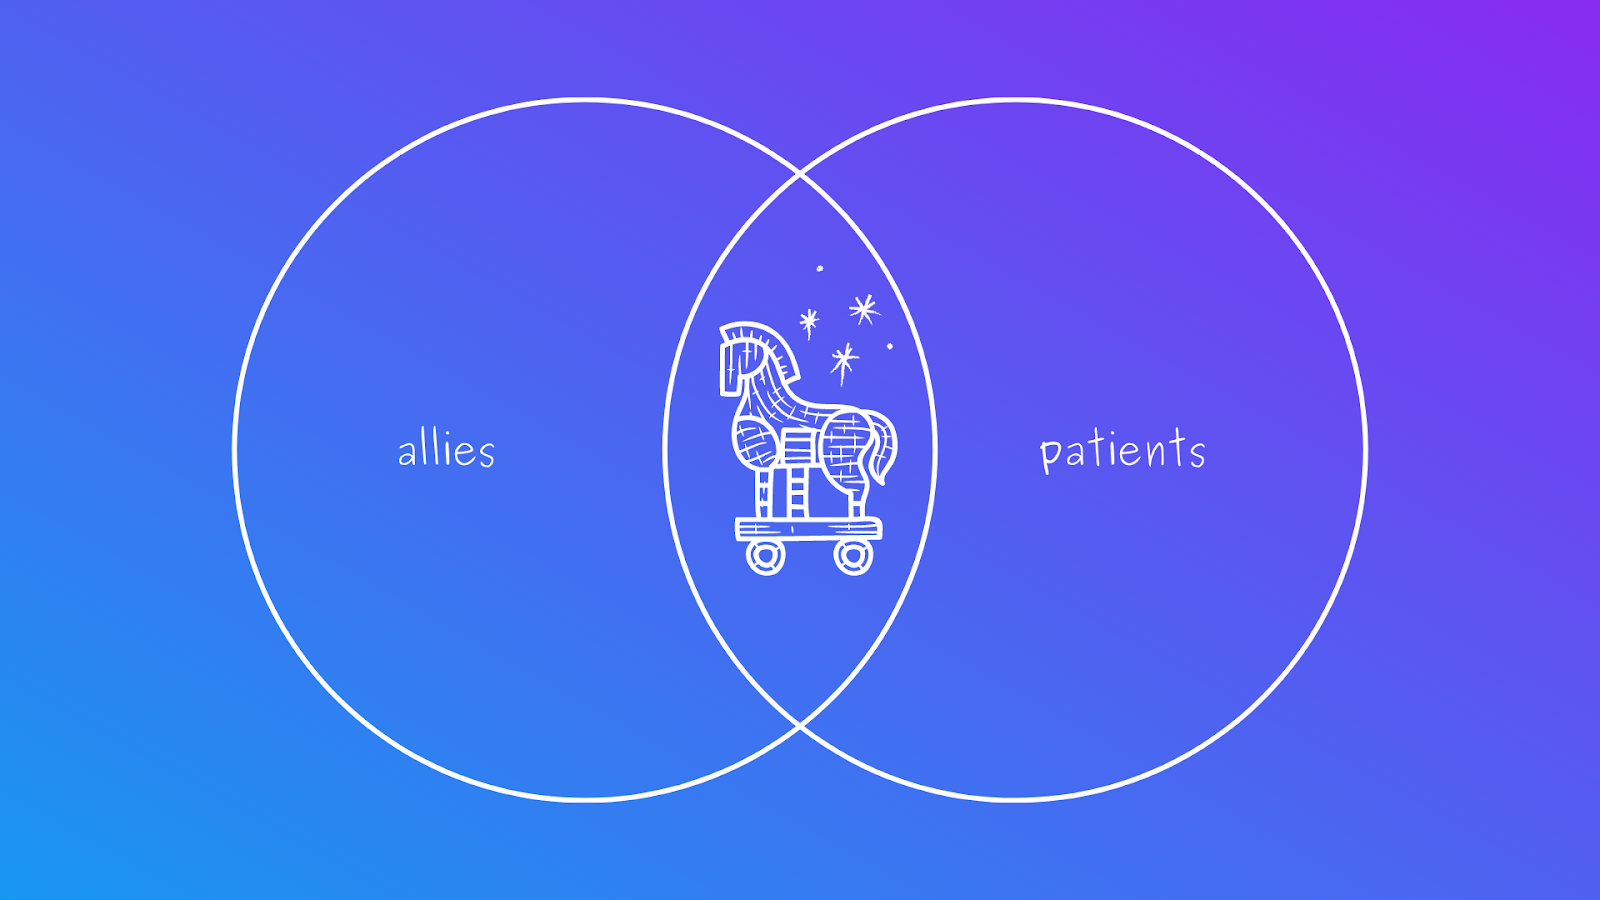 venn diagram of allies and patients showing a trojan horse in the middle